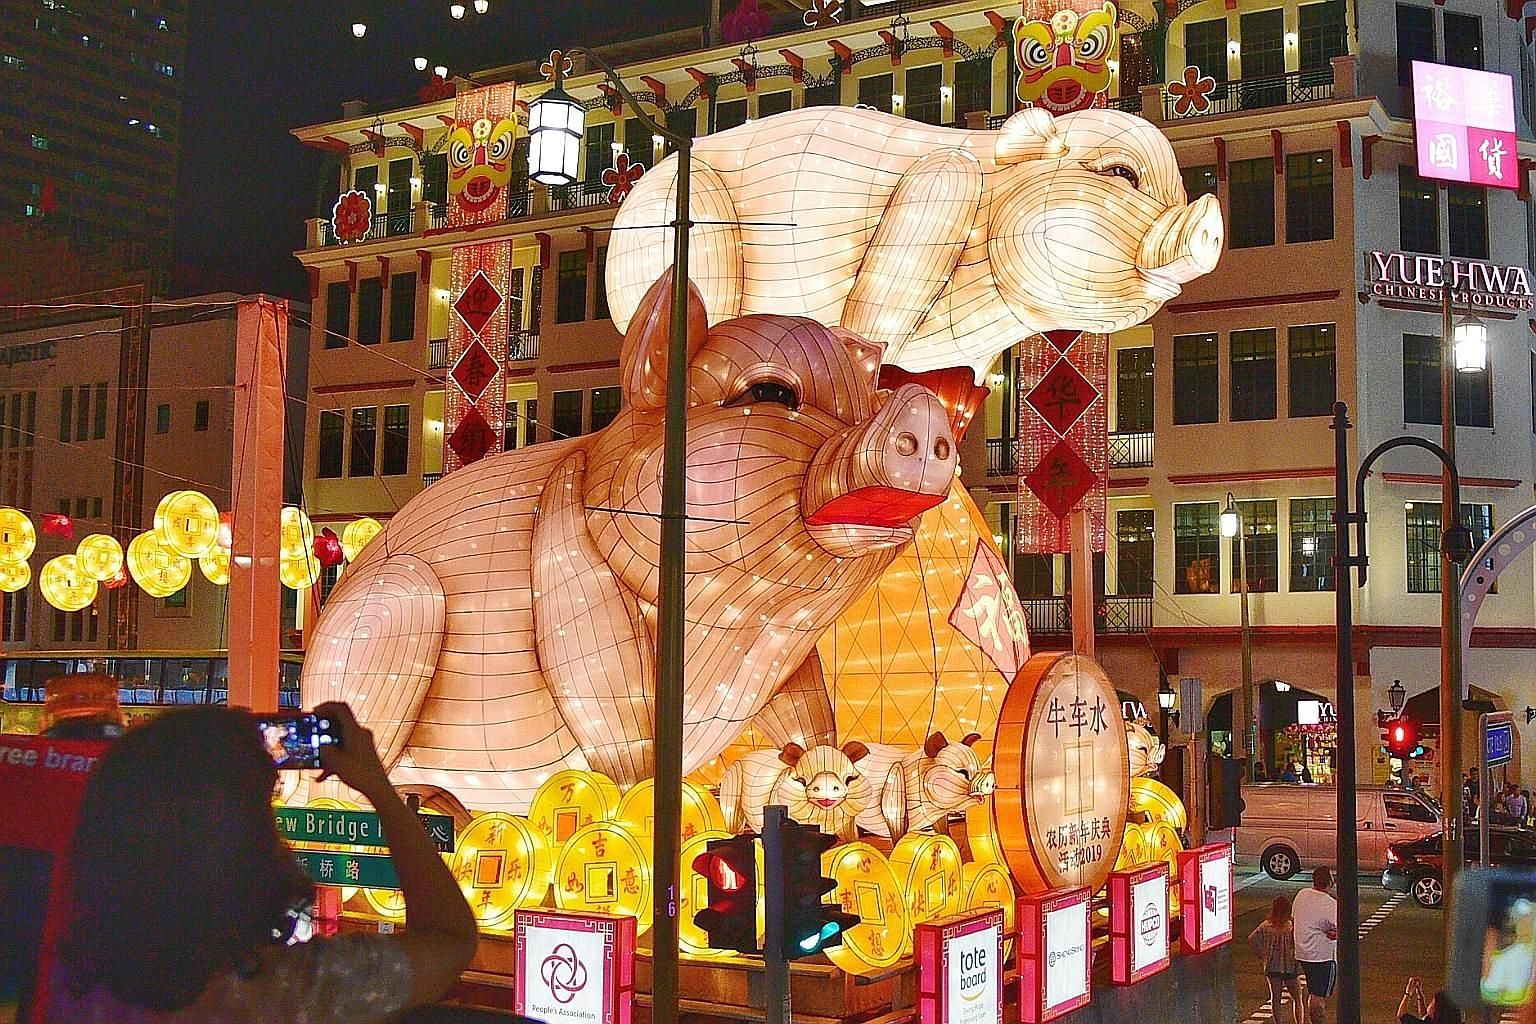 The centrepiece of this year's Chinese New Year display in Chinatown features pigs perched on top of a lantern depicting a bulging purse overflowing with gold coins.